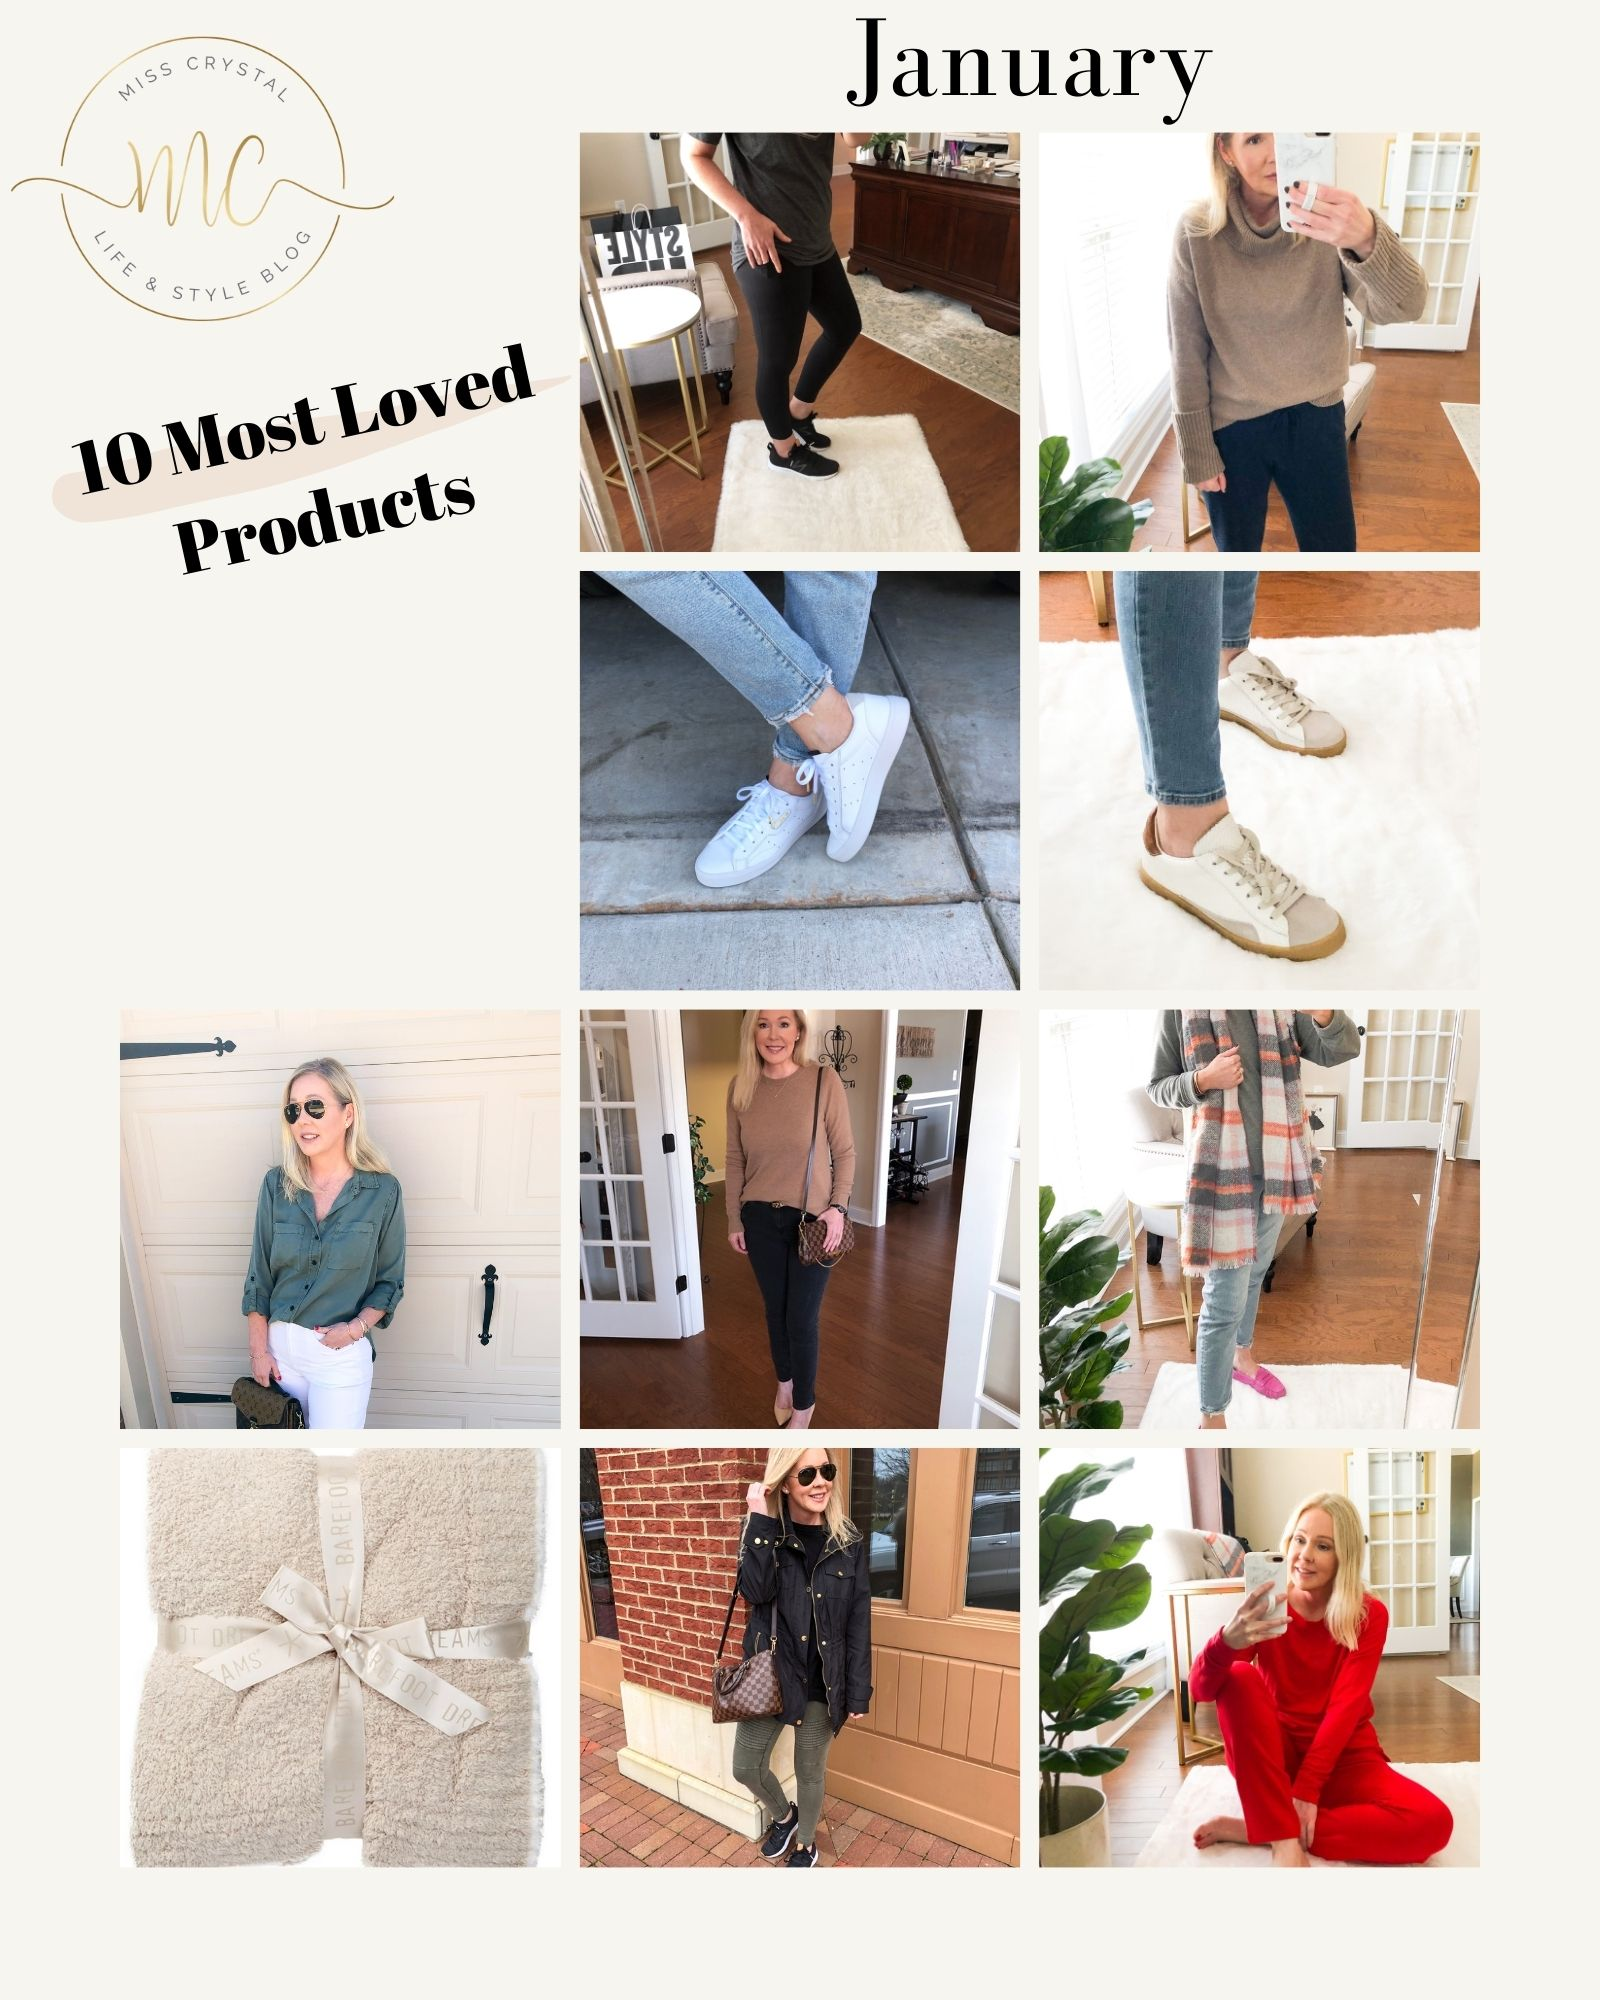 10 most loved products January misscrystalblog